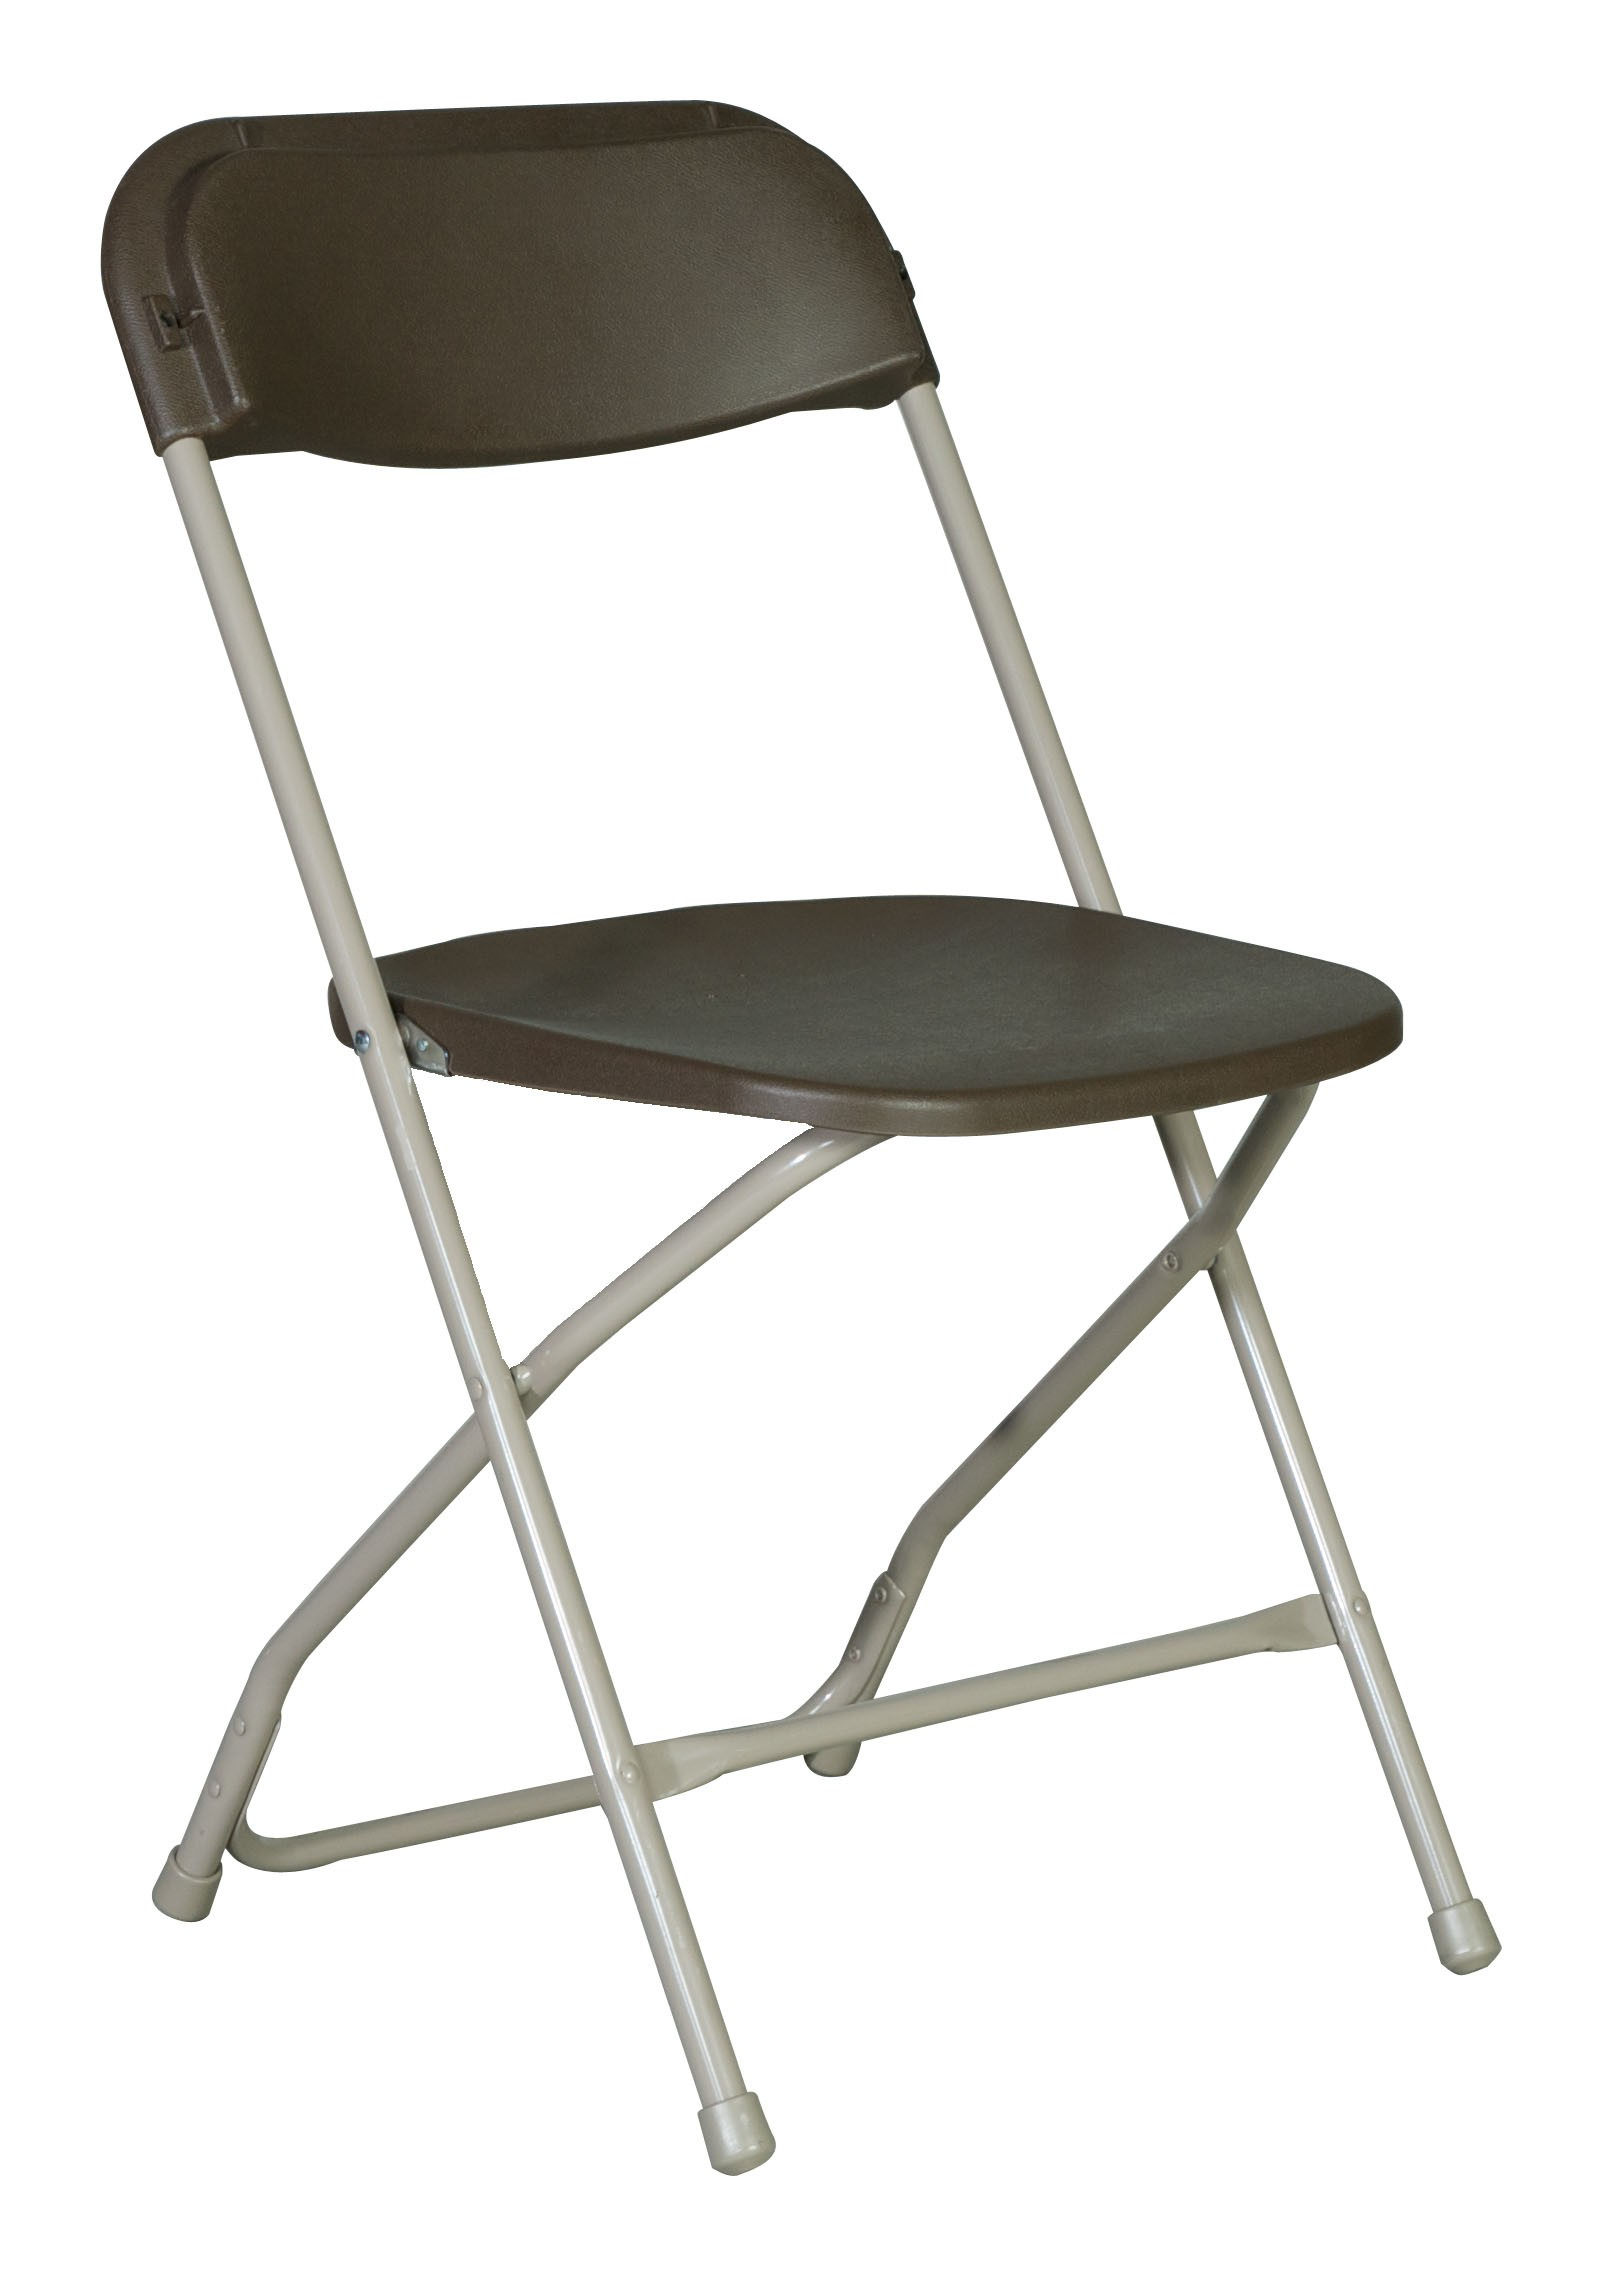 Amazing Rhino-Series™ Plastic Folding Chair - Brown #2190 plastic folding chairs